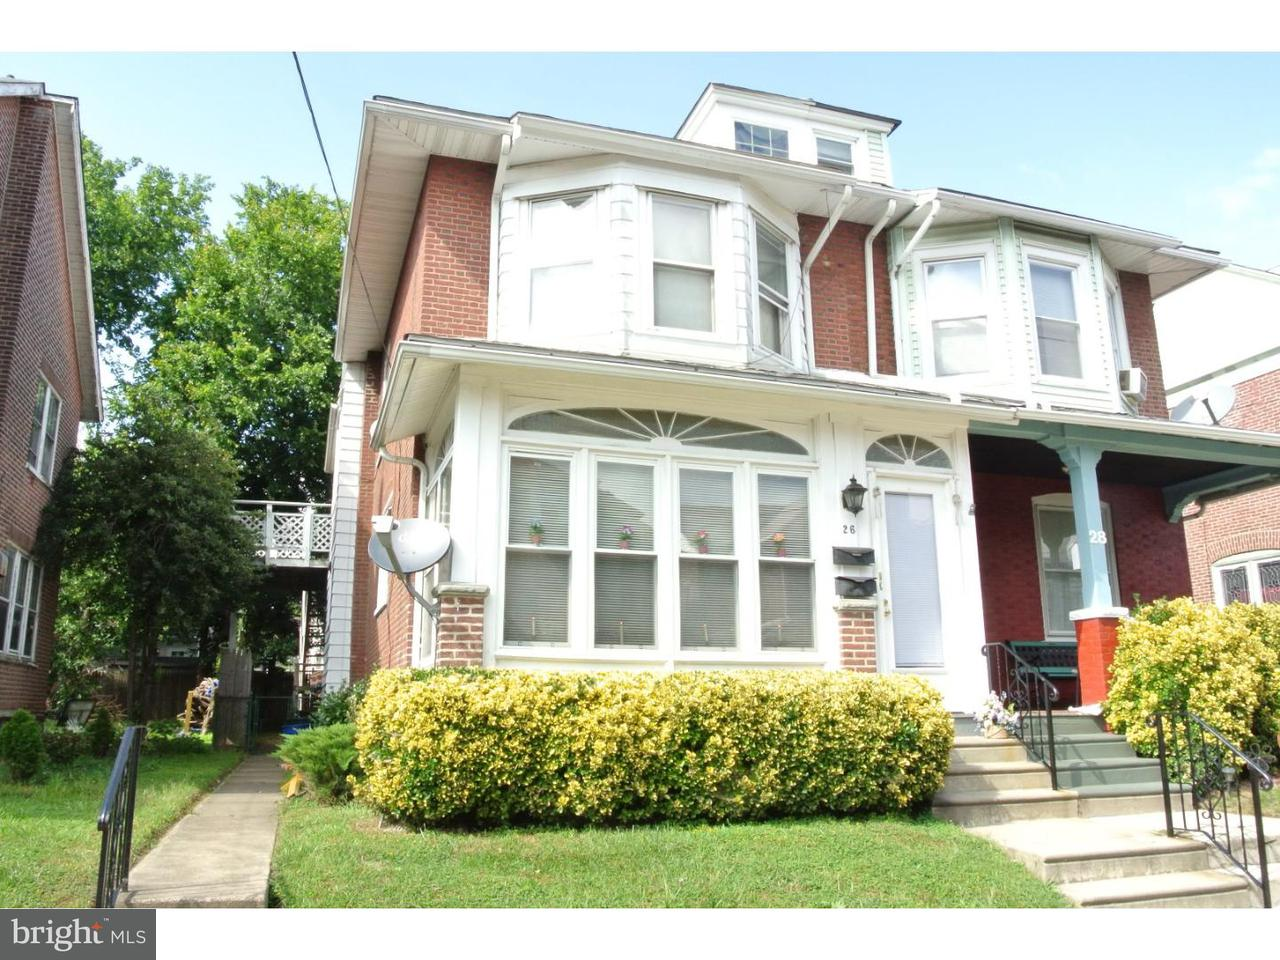 Duplex for Rent at 26 E 23RD ST #2ND FL Chester, Pennsylvania 19013 United States